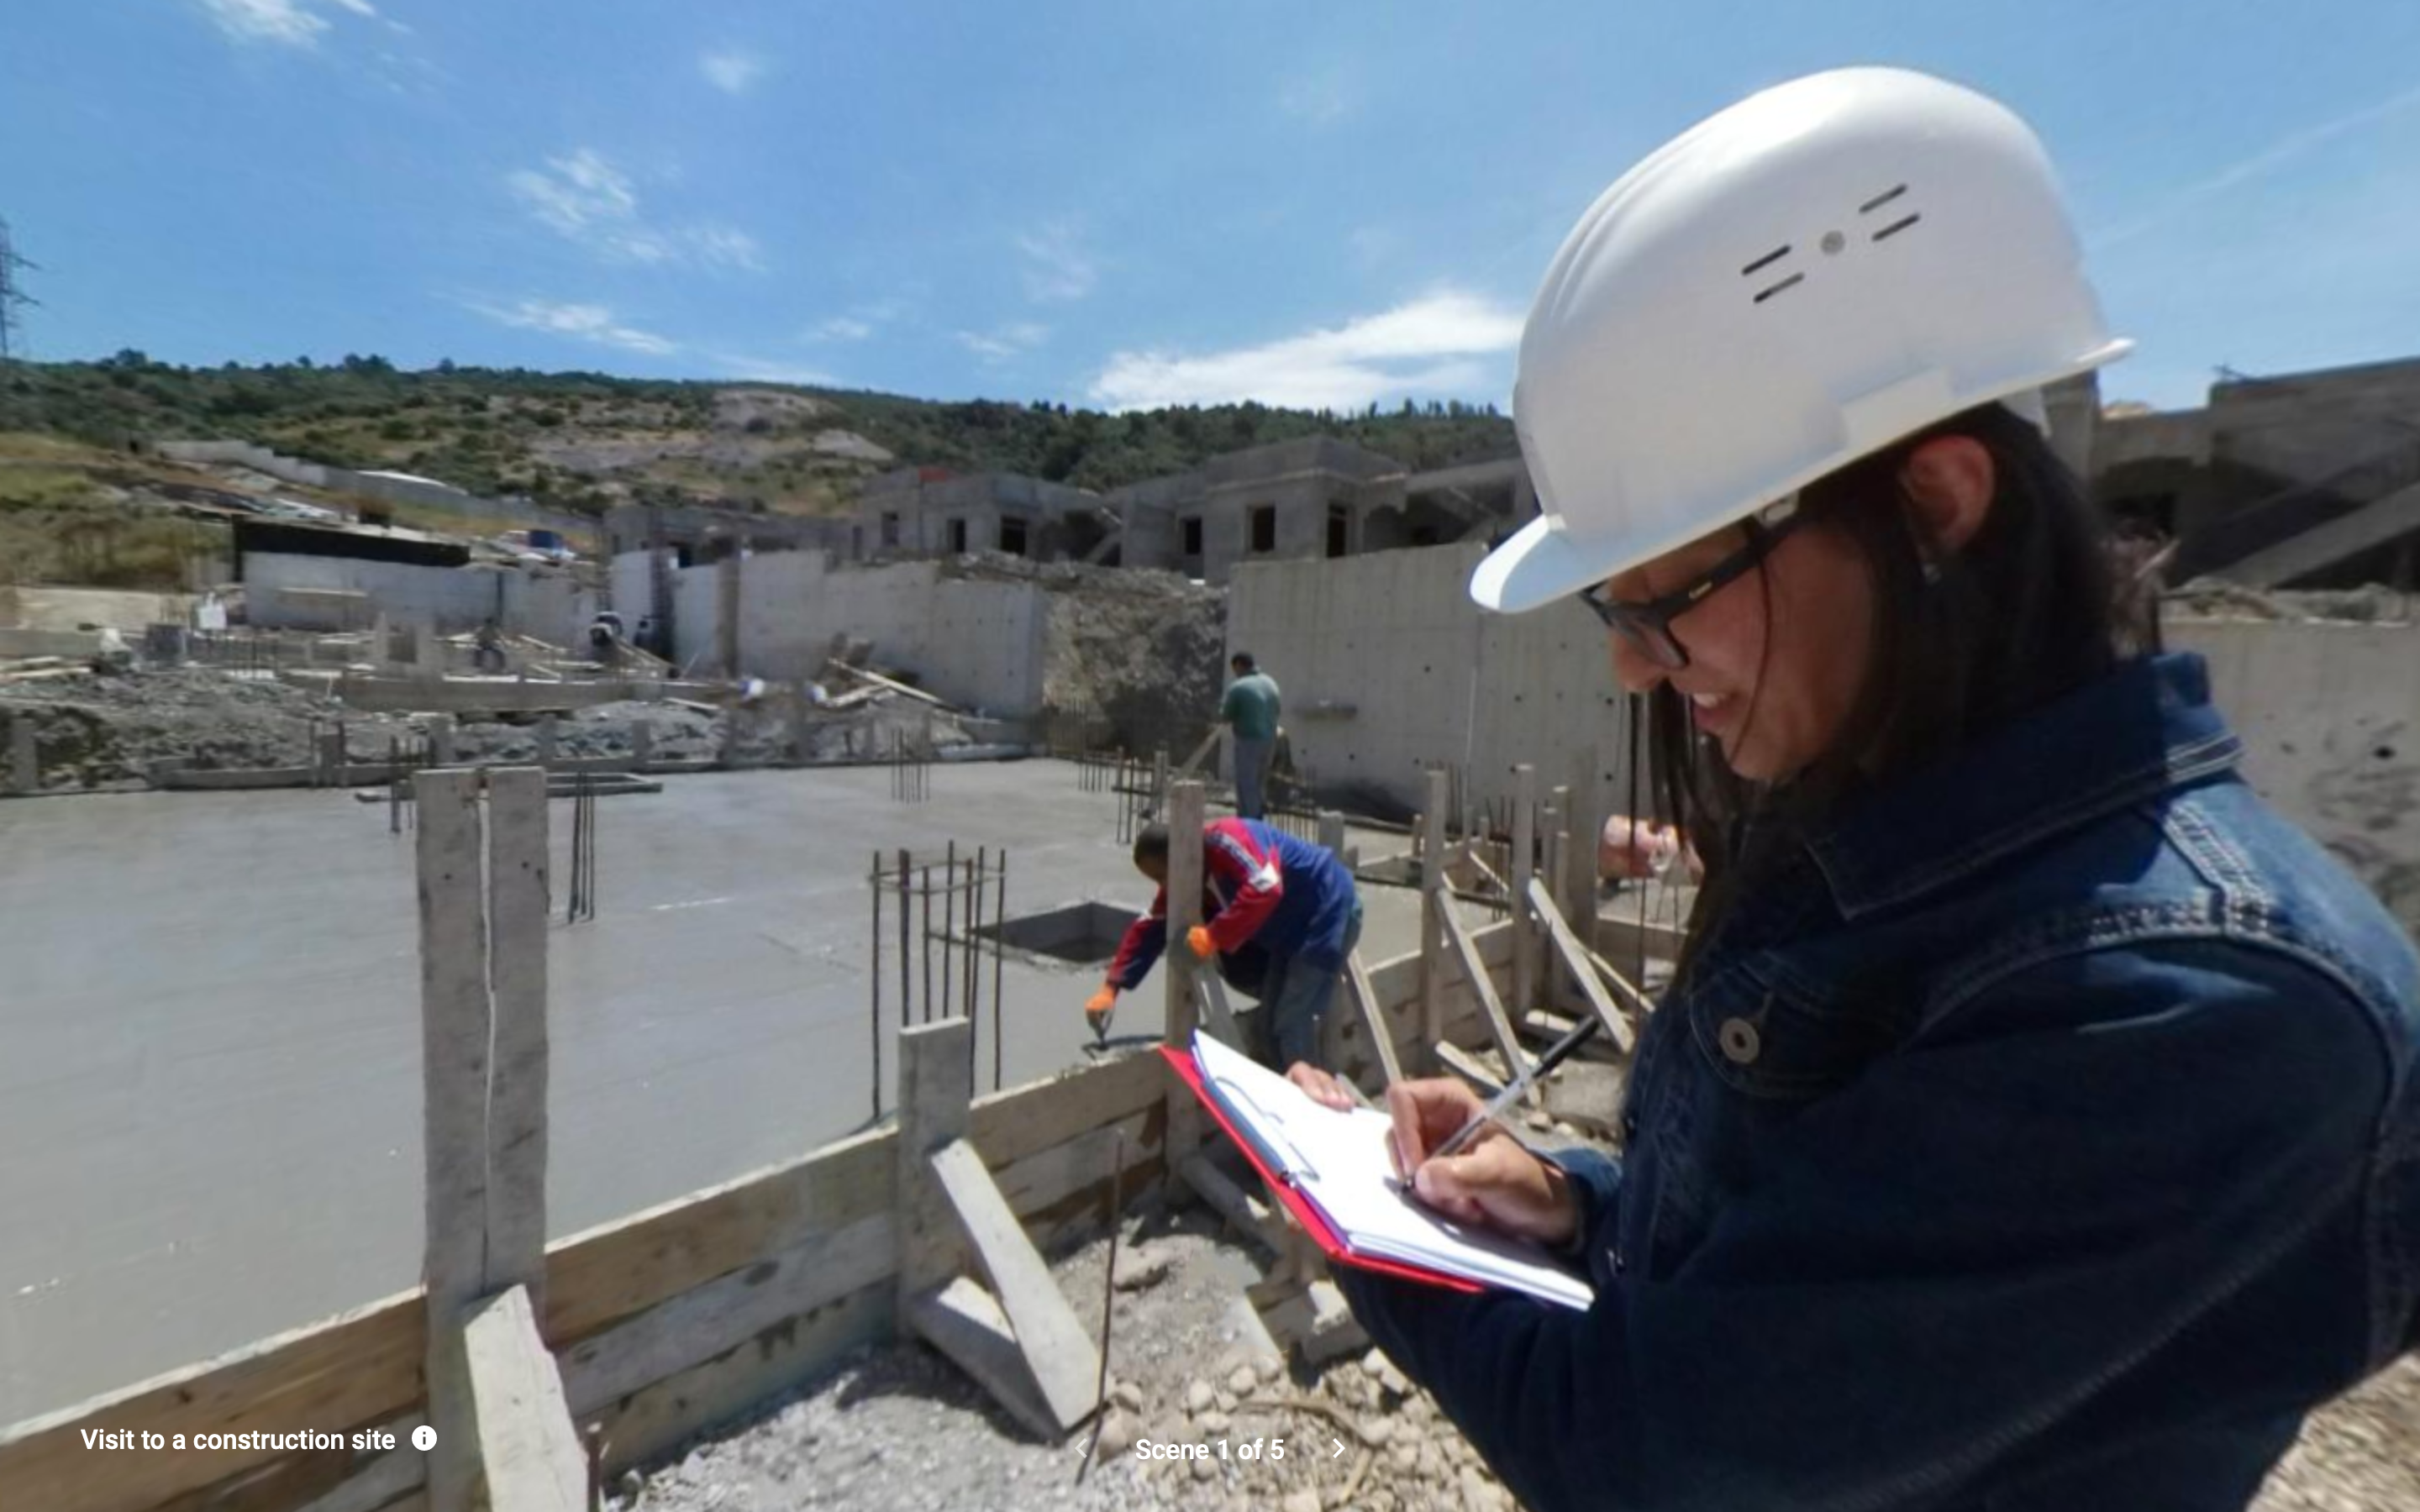 A woman in a white helmet writes on a clipboard while a construction worker smooths cement in the background.